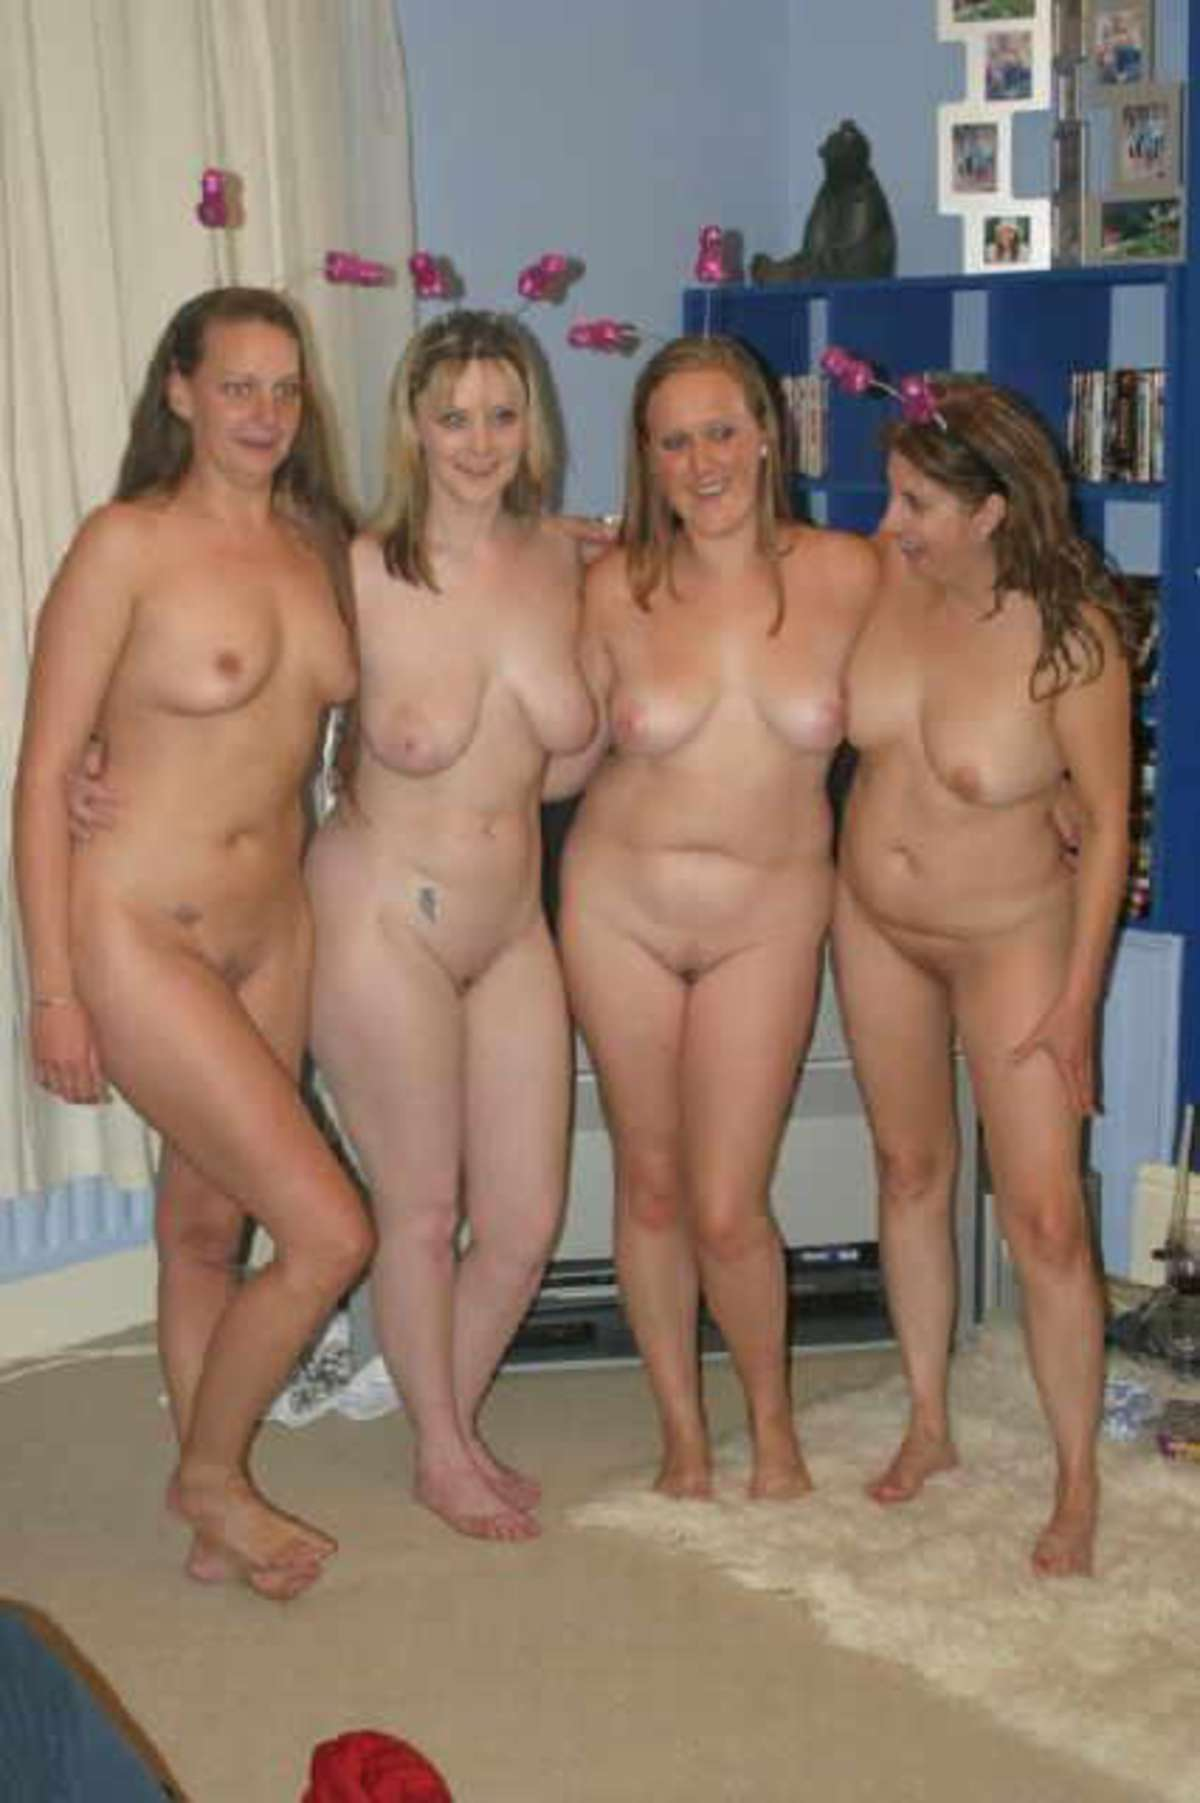 Naked girls in a movie